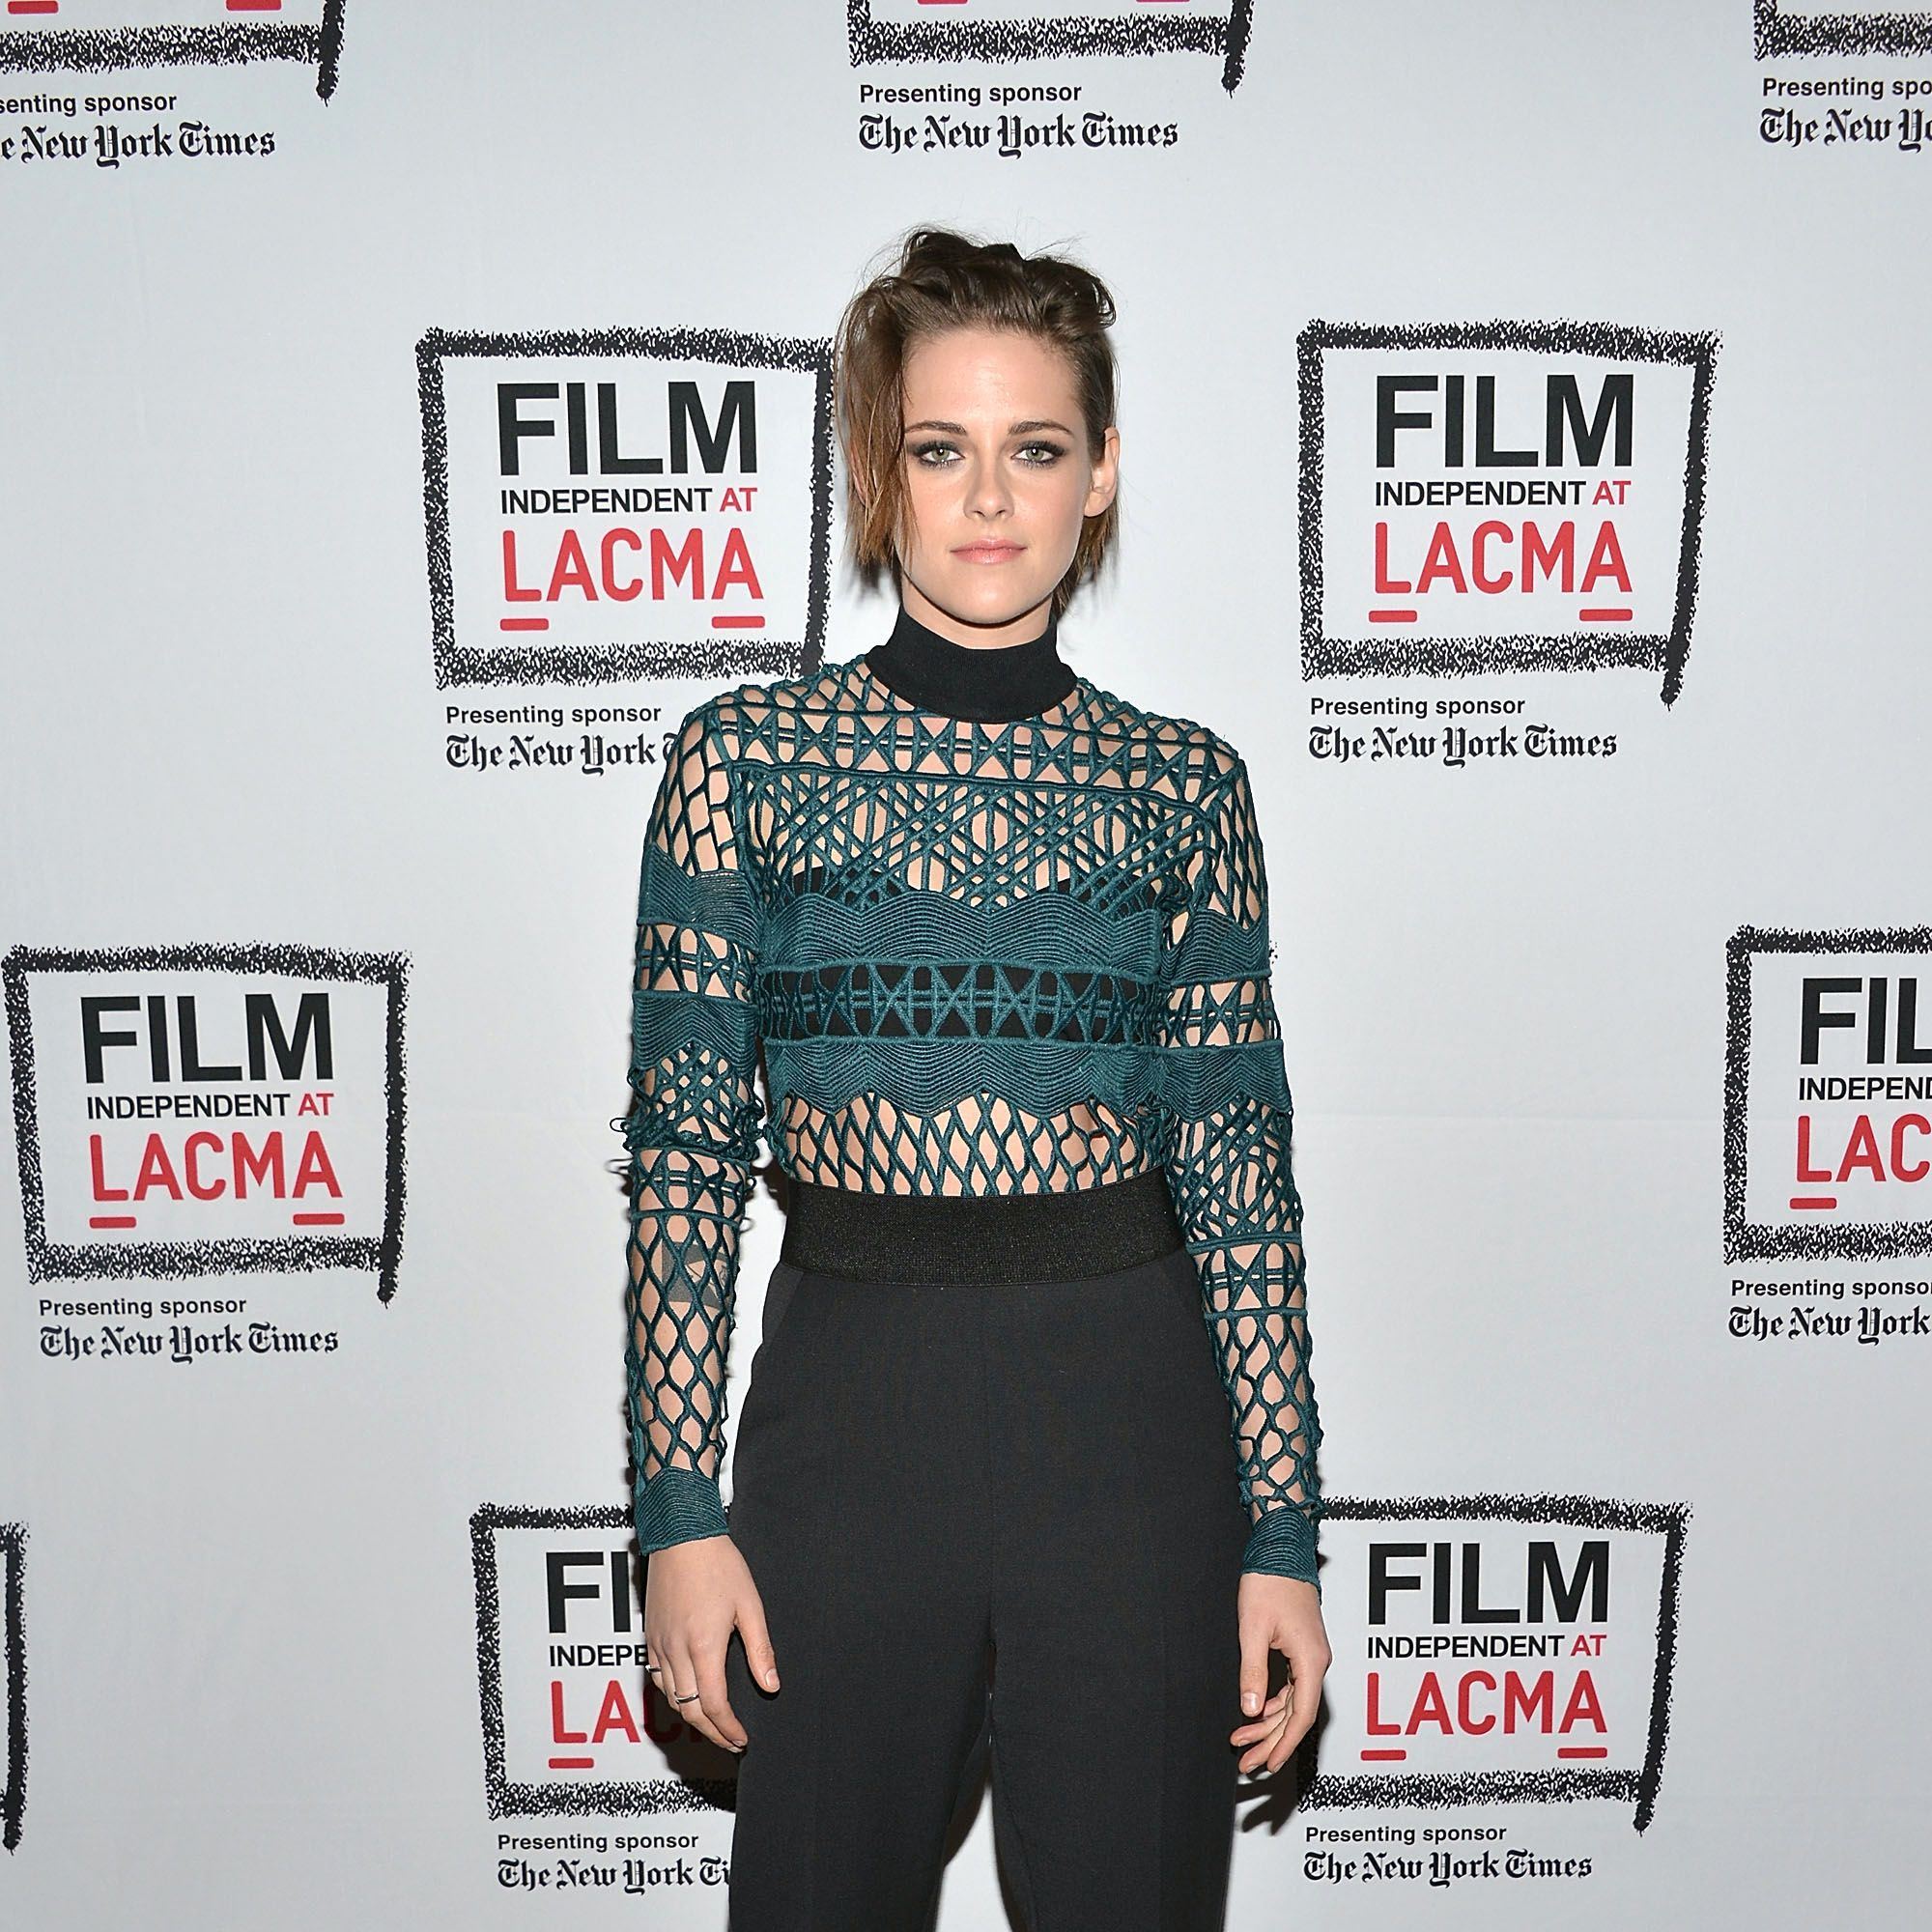 LOS ANGELES, CA - APRIL 03:  Kristen Stewart attends the Film Independent at LACMA screening and Q&amp&#x3B;A of 'Clouds Of Sils Maria' at Bing Theatre At LACMA on April 3, 2015 in Los Angeles, California.  (Photo by Araya Diaz/WireImage)